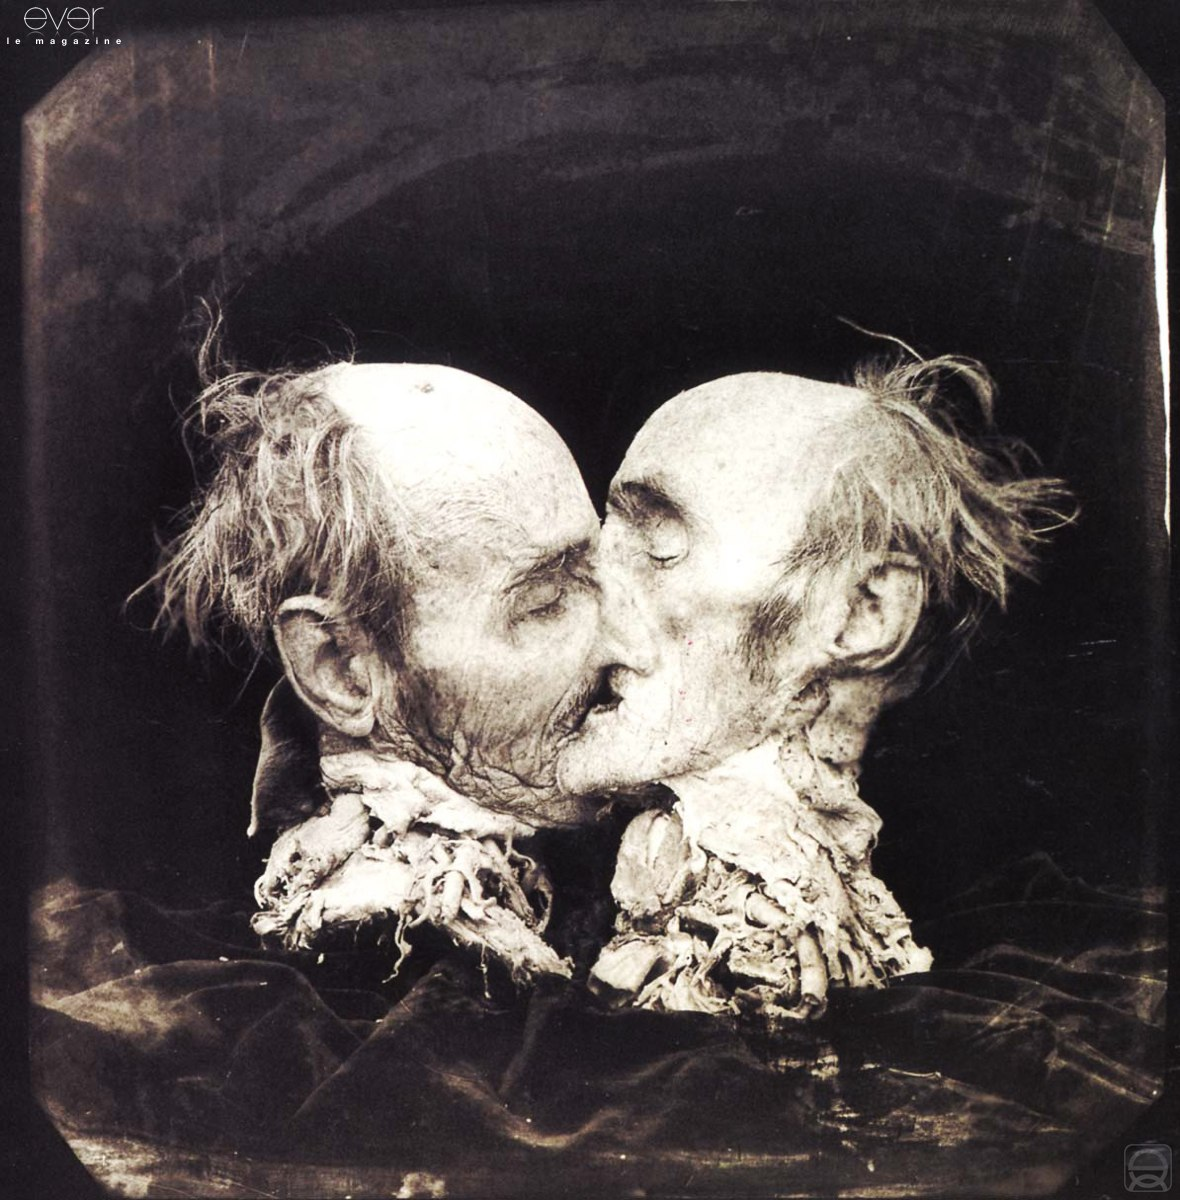 the-kiss-le-baiser-new-mexico-joel-peter-witkin